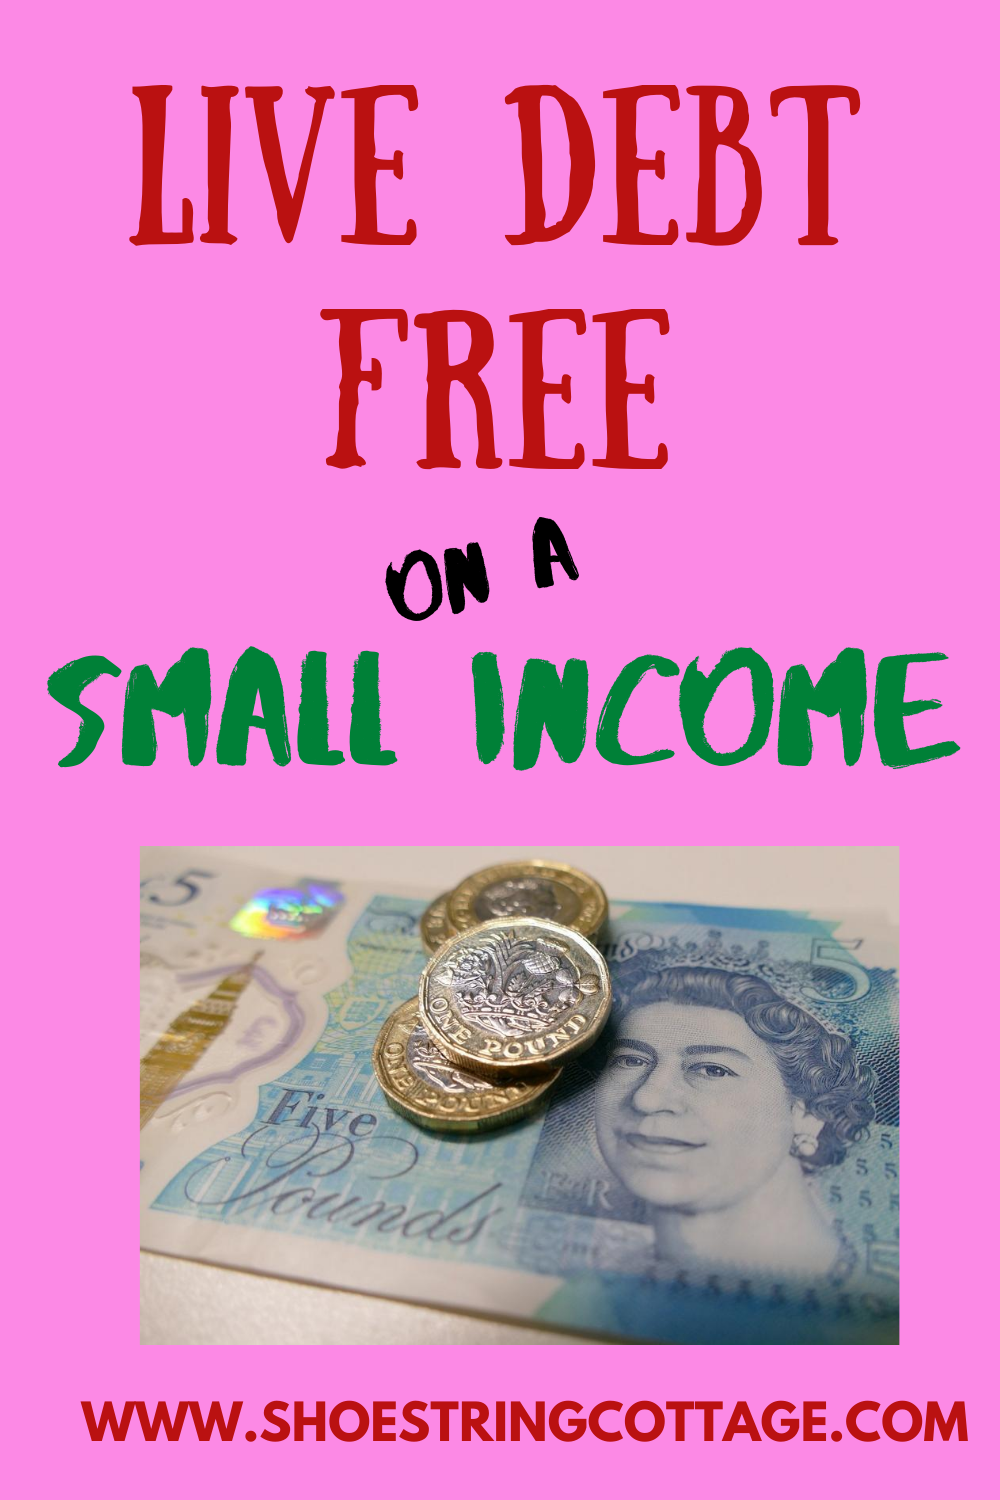 DEBT FREE ON A SMALL INCOME